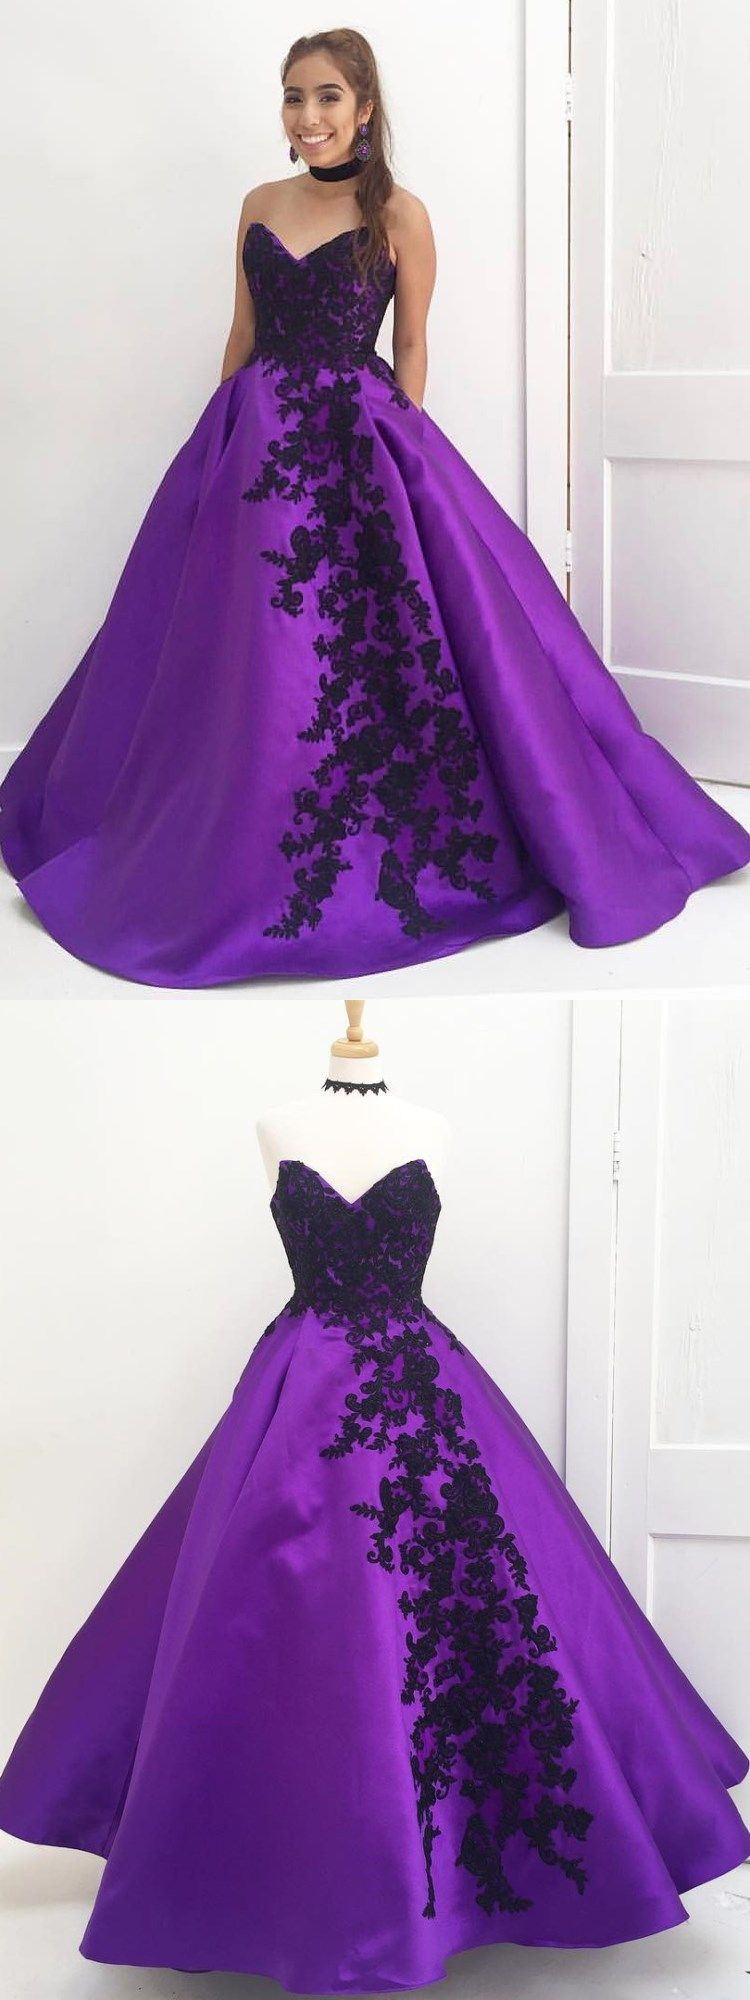 Sweetheart purple long quinceanera dress with black appliques